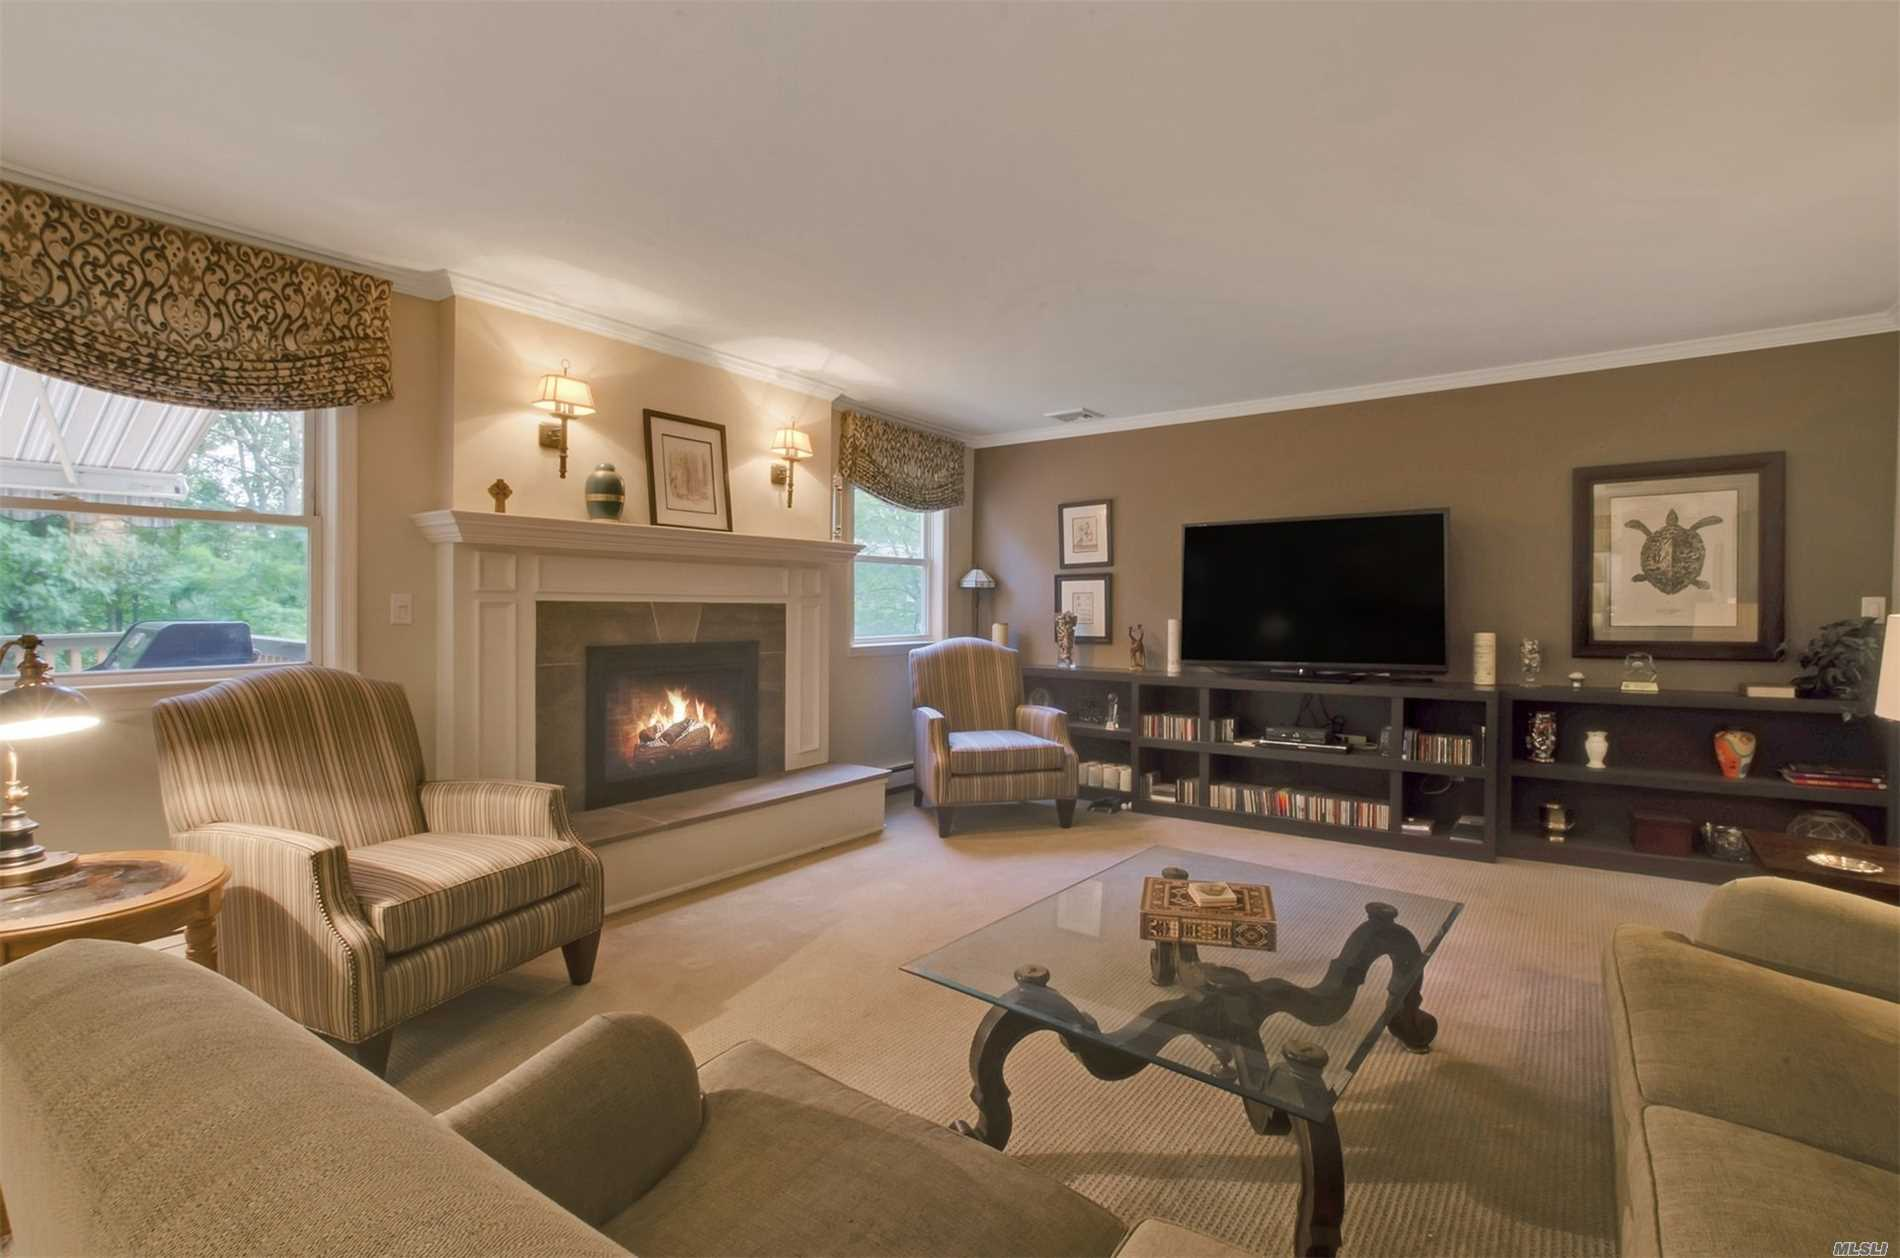 706 Brewster Dr - Port Jefferson, New York